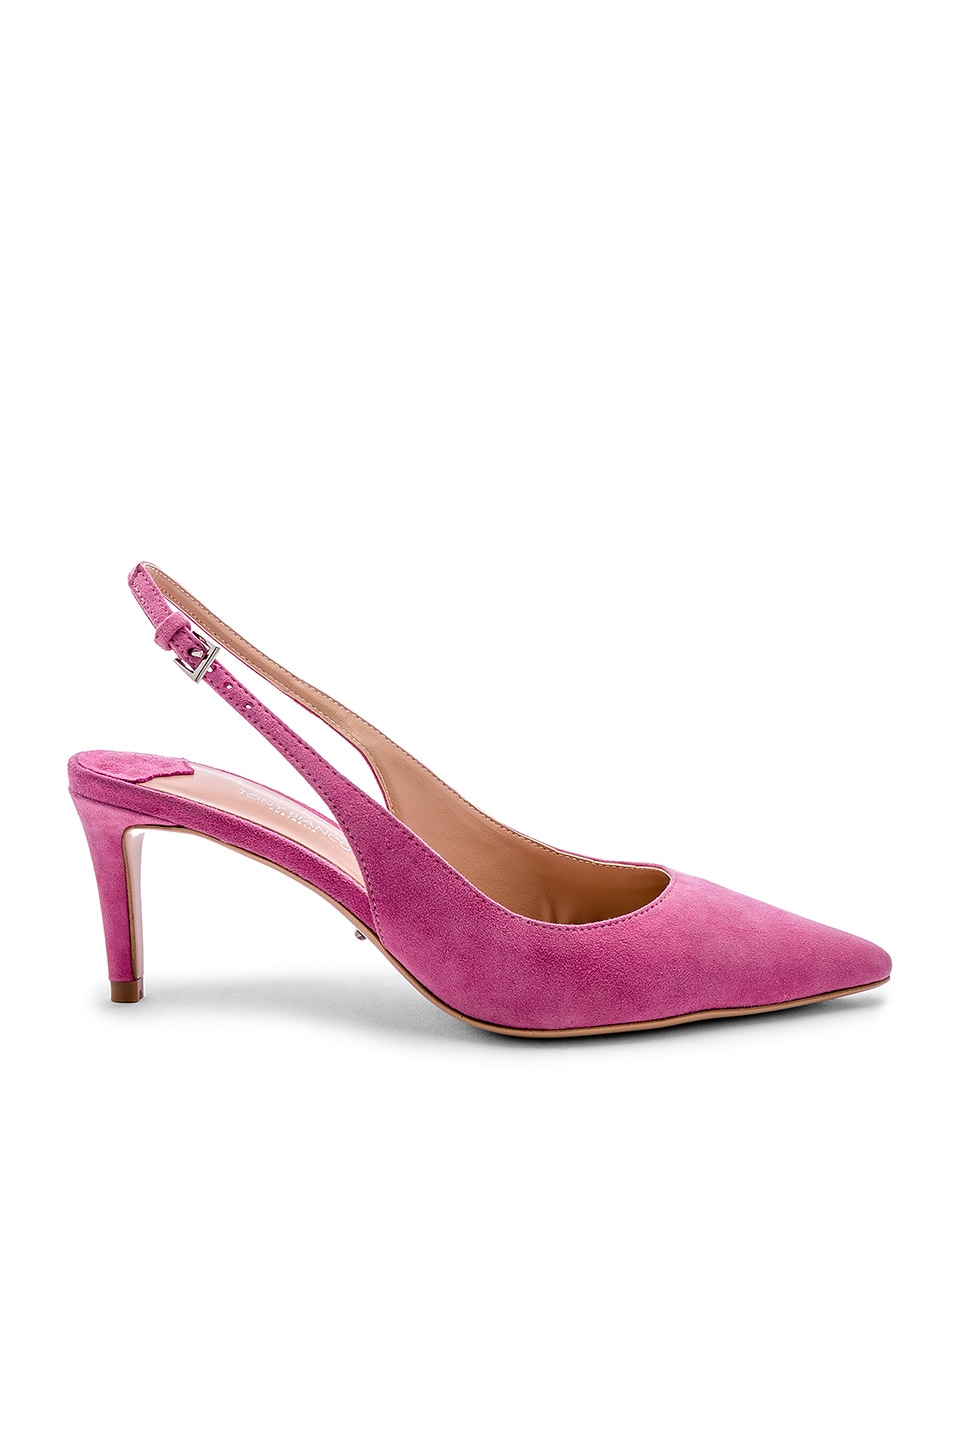 Tony Bianco Gypsy Heel in Pink Kid Suede